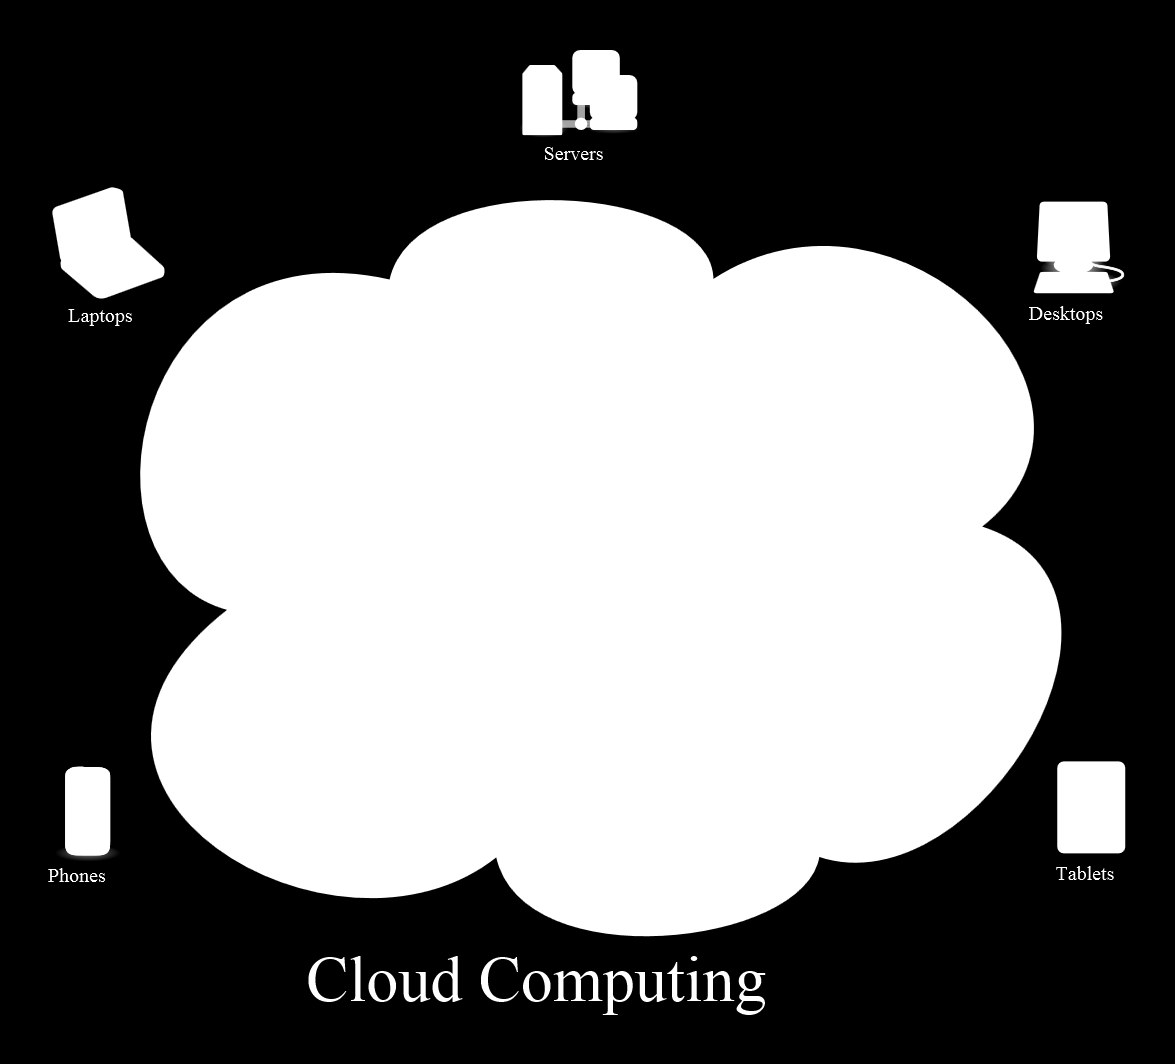 Cloud Computing [http://commons.wikimedia.